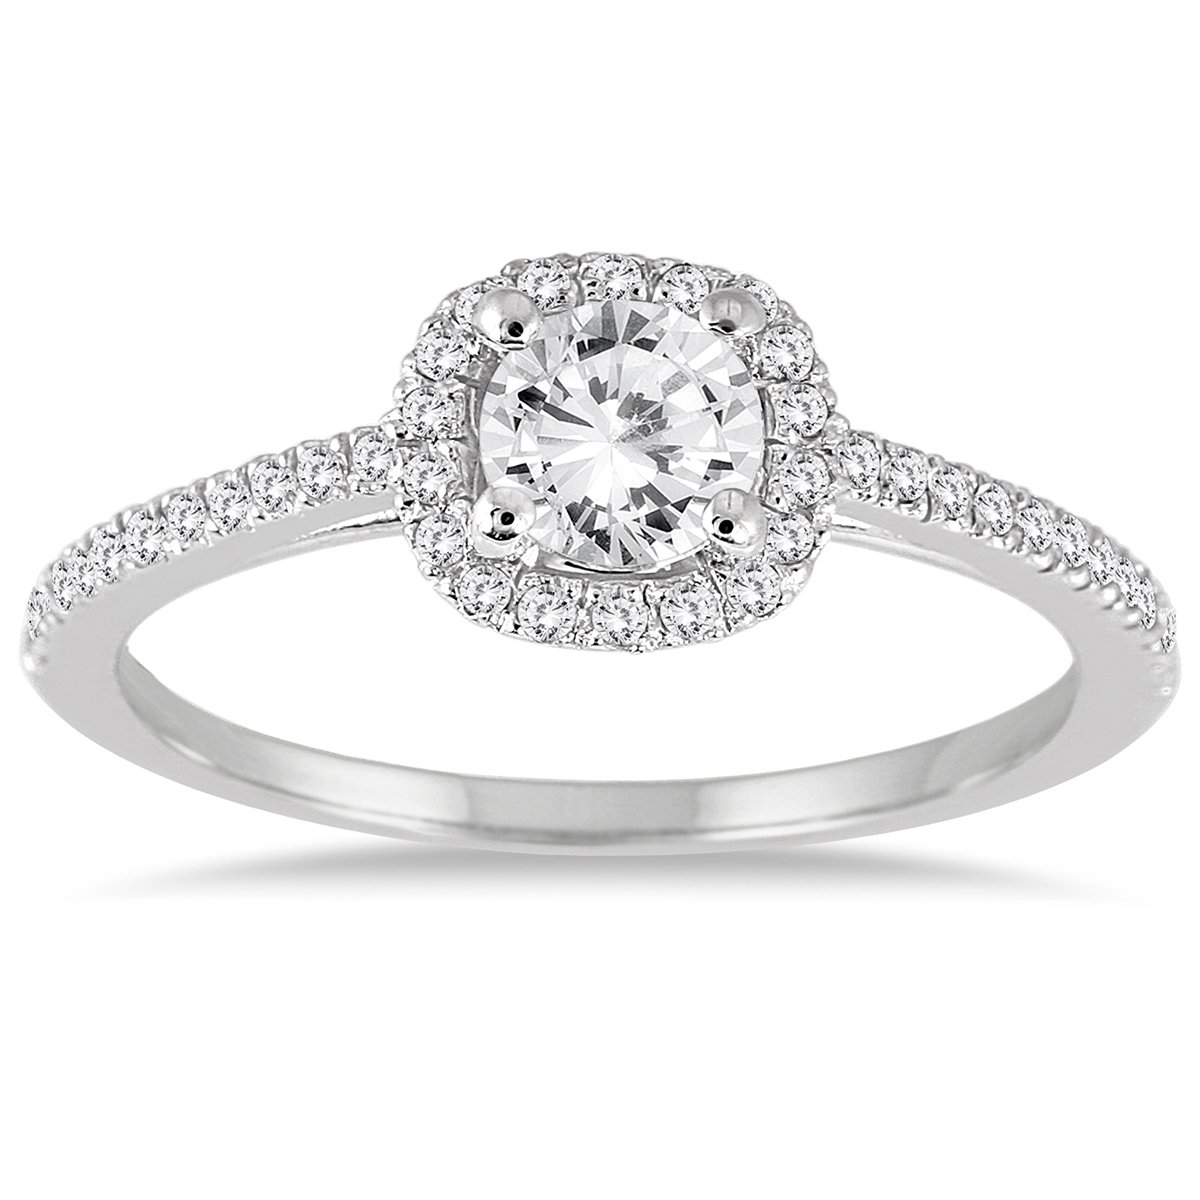 AGS Certified 3/4 Carat TW Diamond Halo Engagement Ring in 14K White Gold (K-L Color, I2-I3 Clarity)